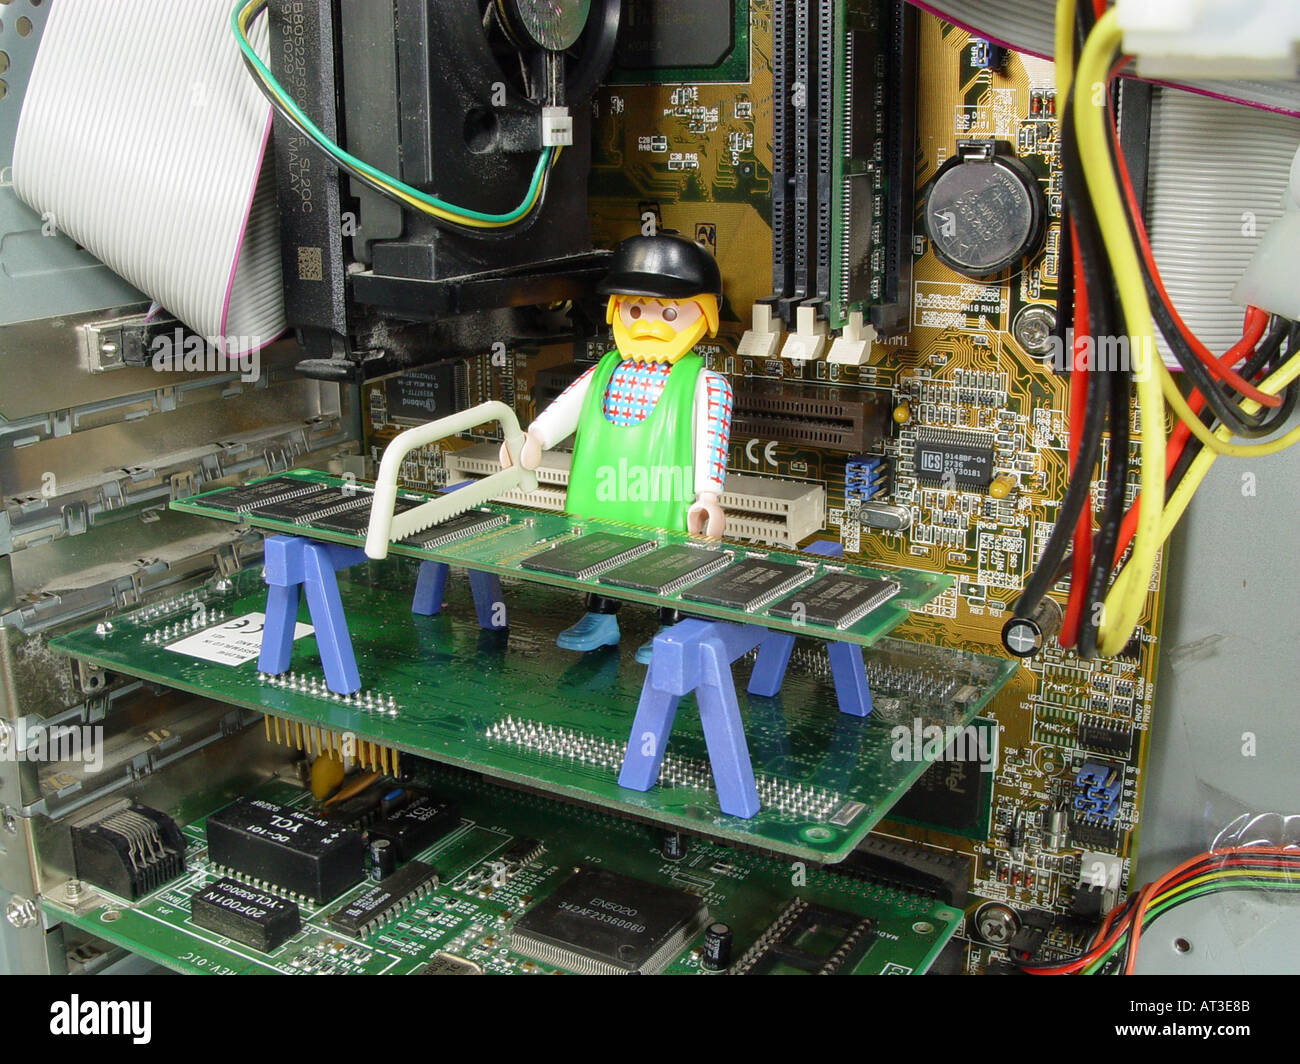 Symbol Picture For Hardware Upgrade Memory Expansion Etc Stock Photo Electronic Circuit Symbols